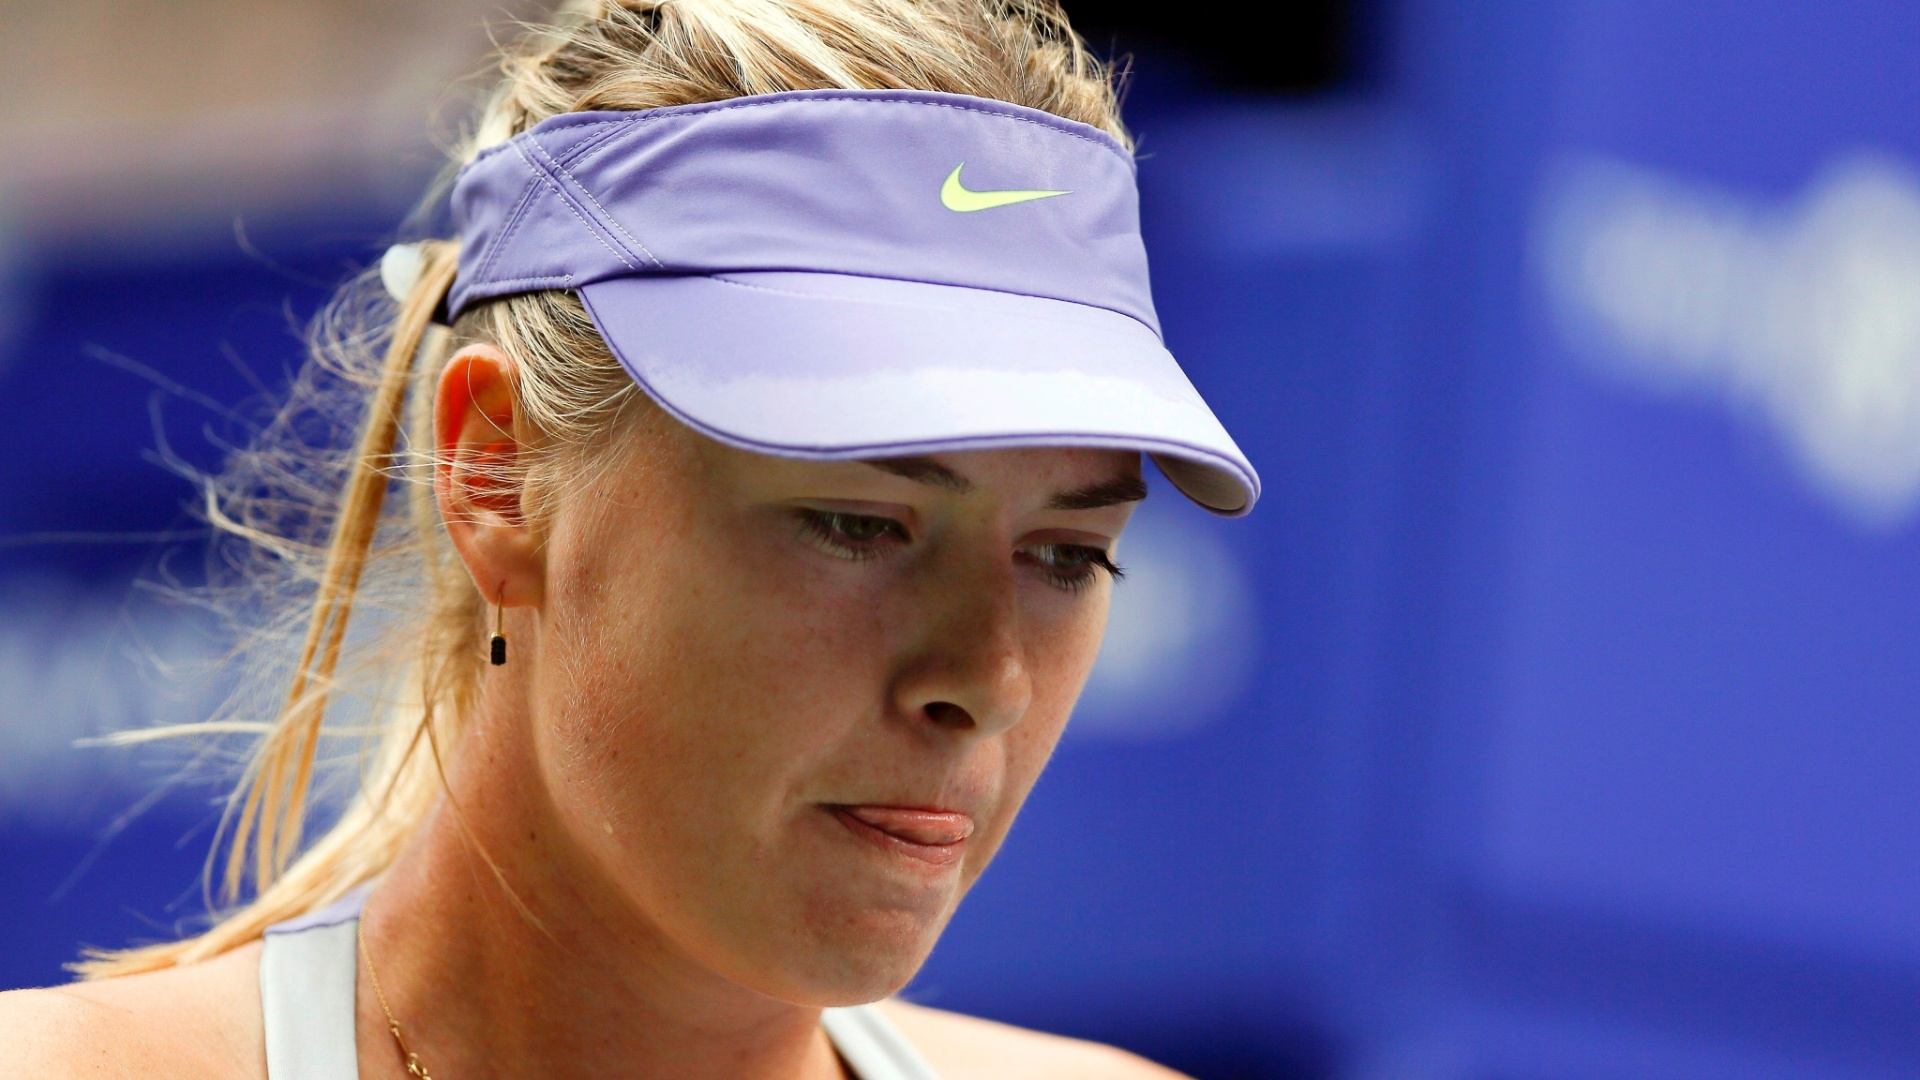 Sharapova foi eliminada nas quartas de final do WTA de Tóquio